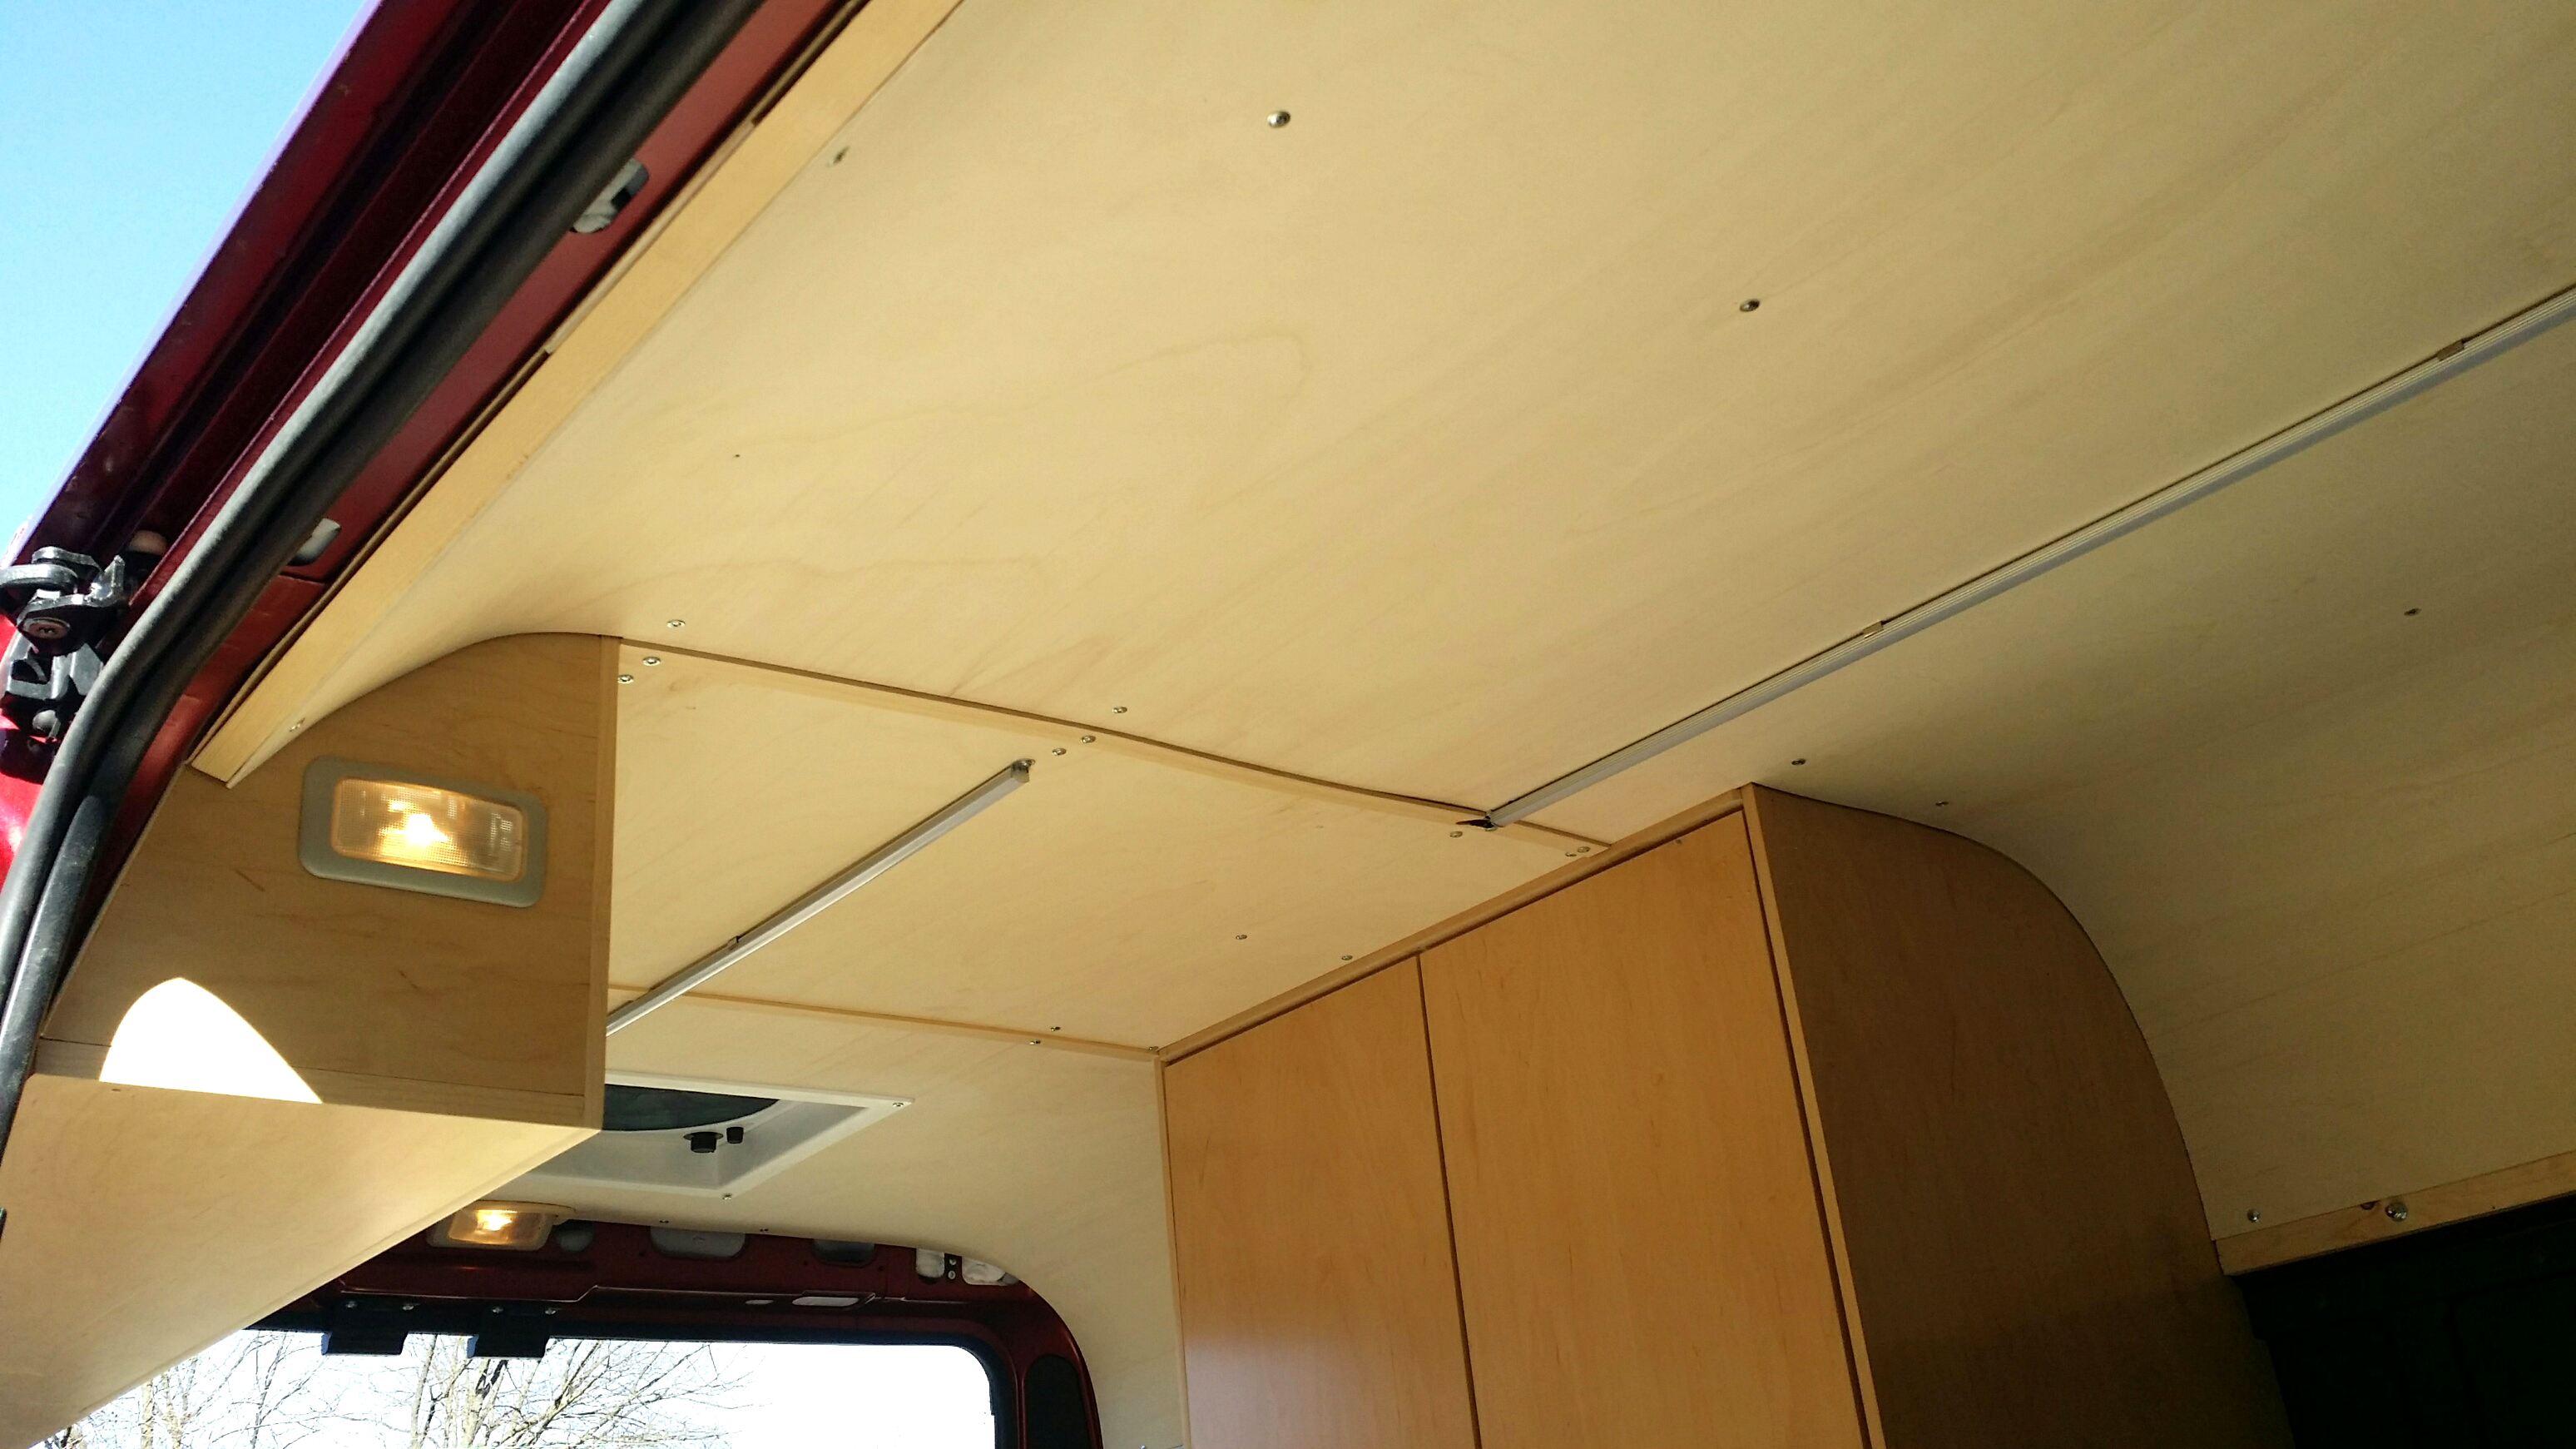 camper van conversion step by step guide with photos and